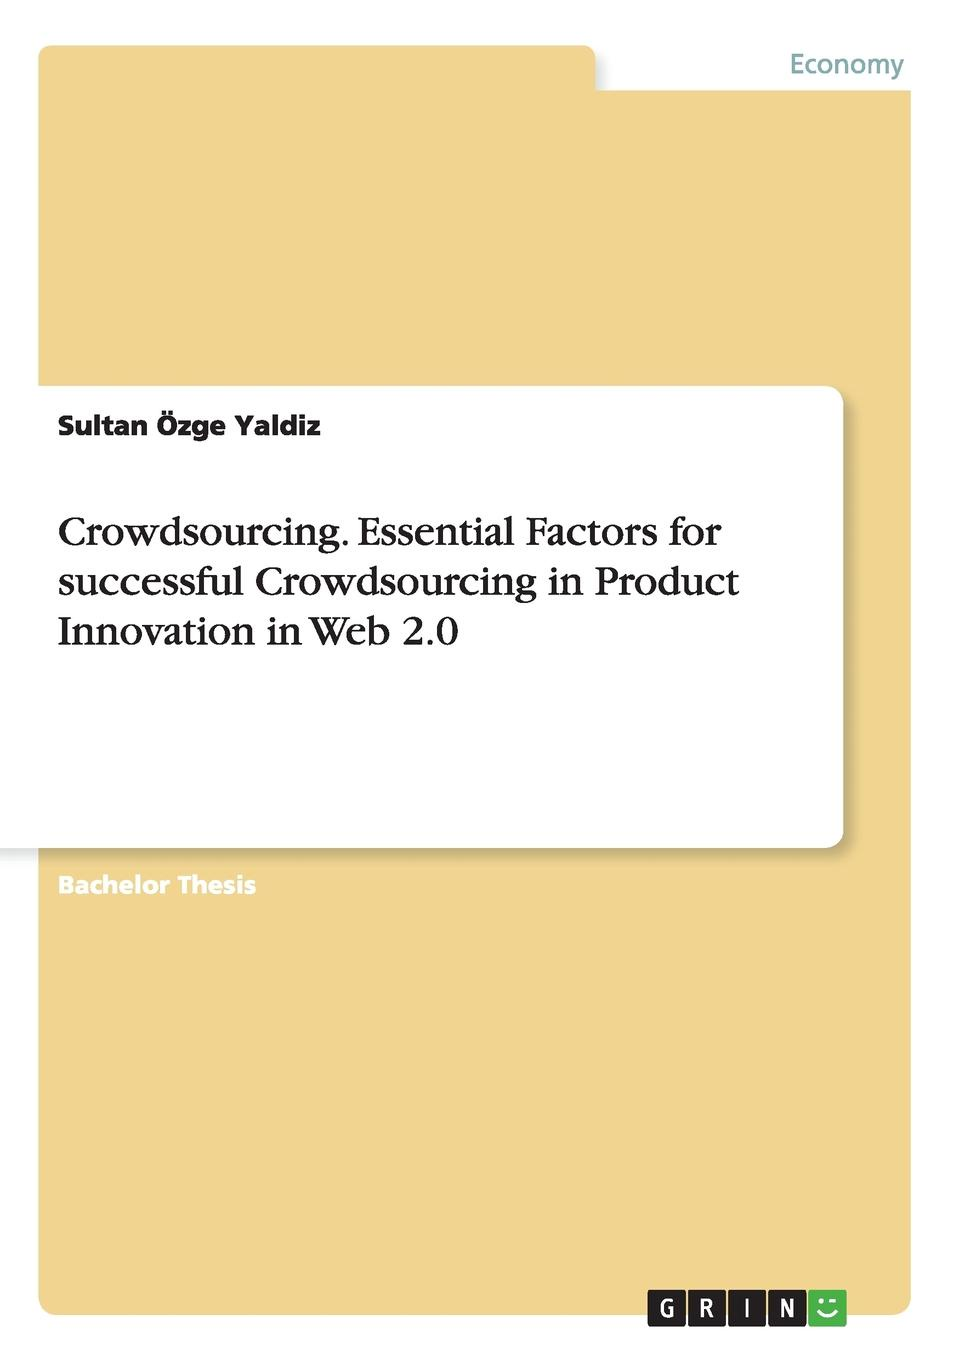 Sultan Özge Yaldiz Crowdsourcing. Essential Factors for successful Crowdsourcing in Product Innovation in Web 2.0 knowledge and innovation dilemmas